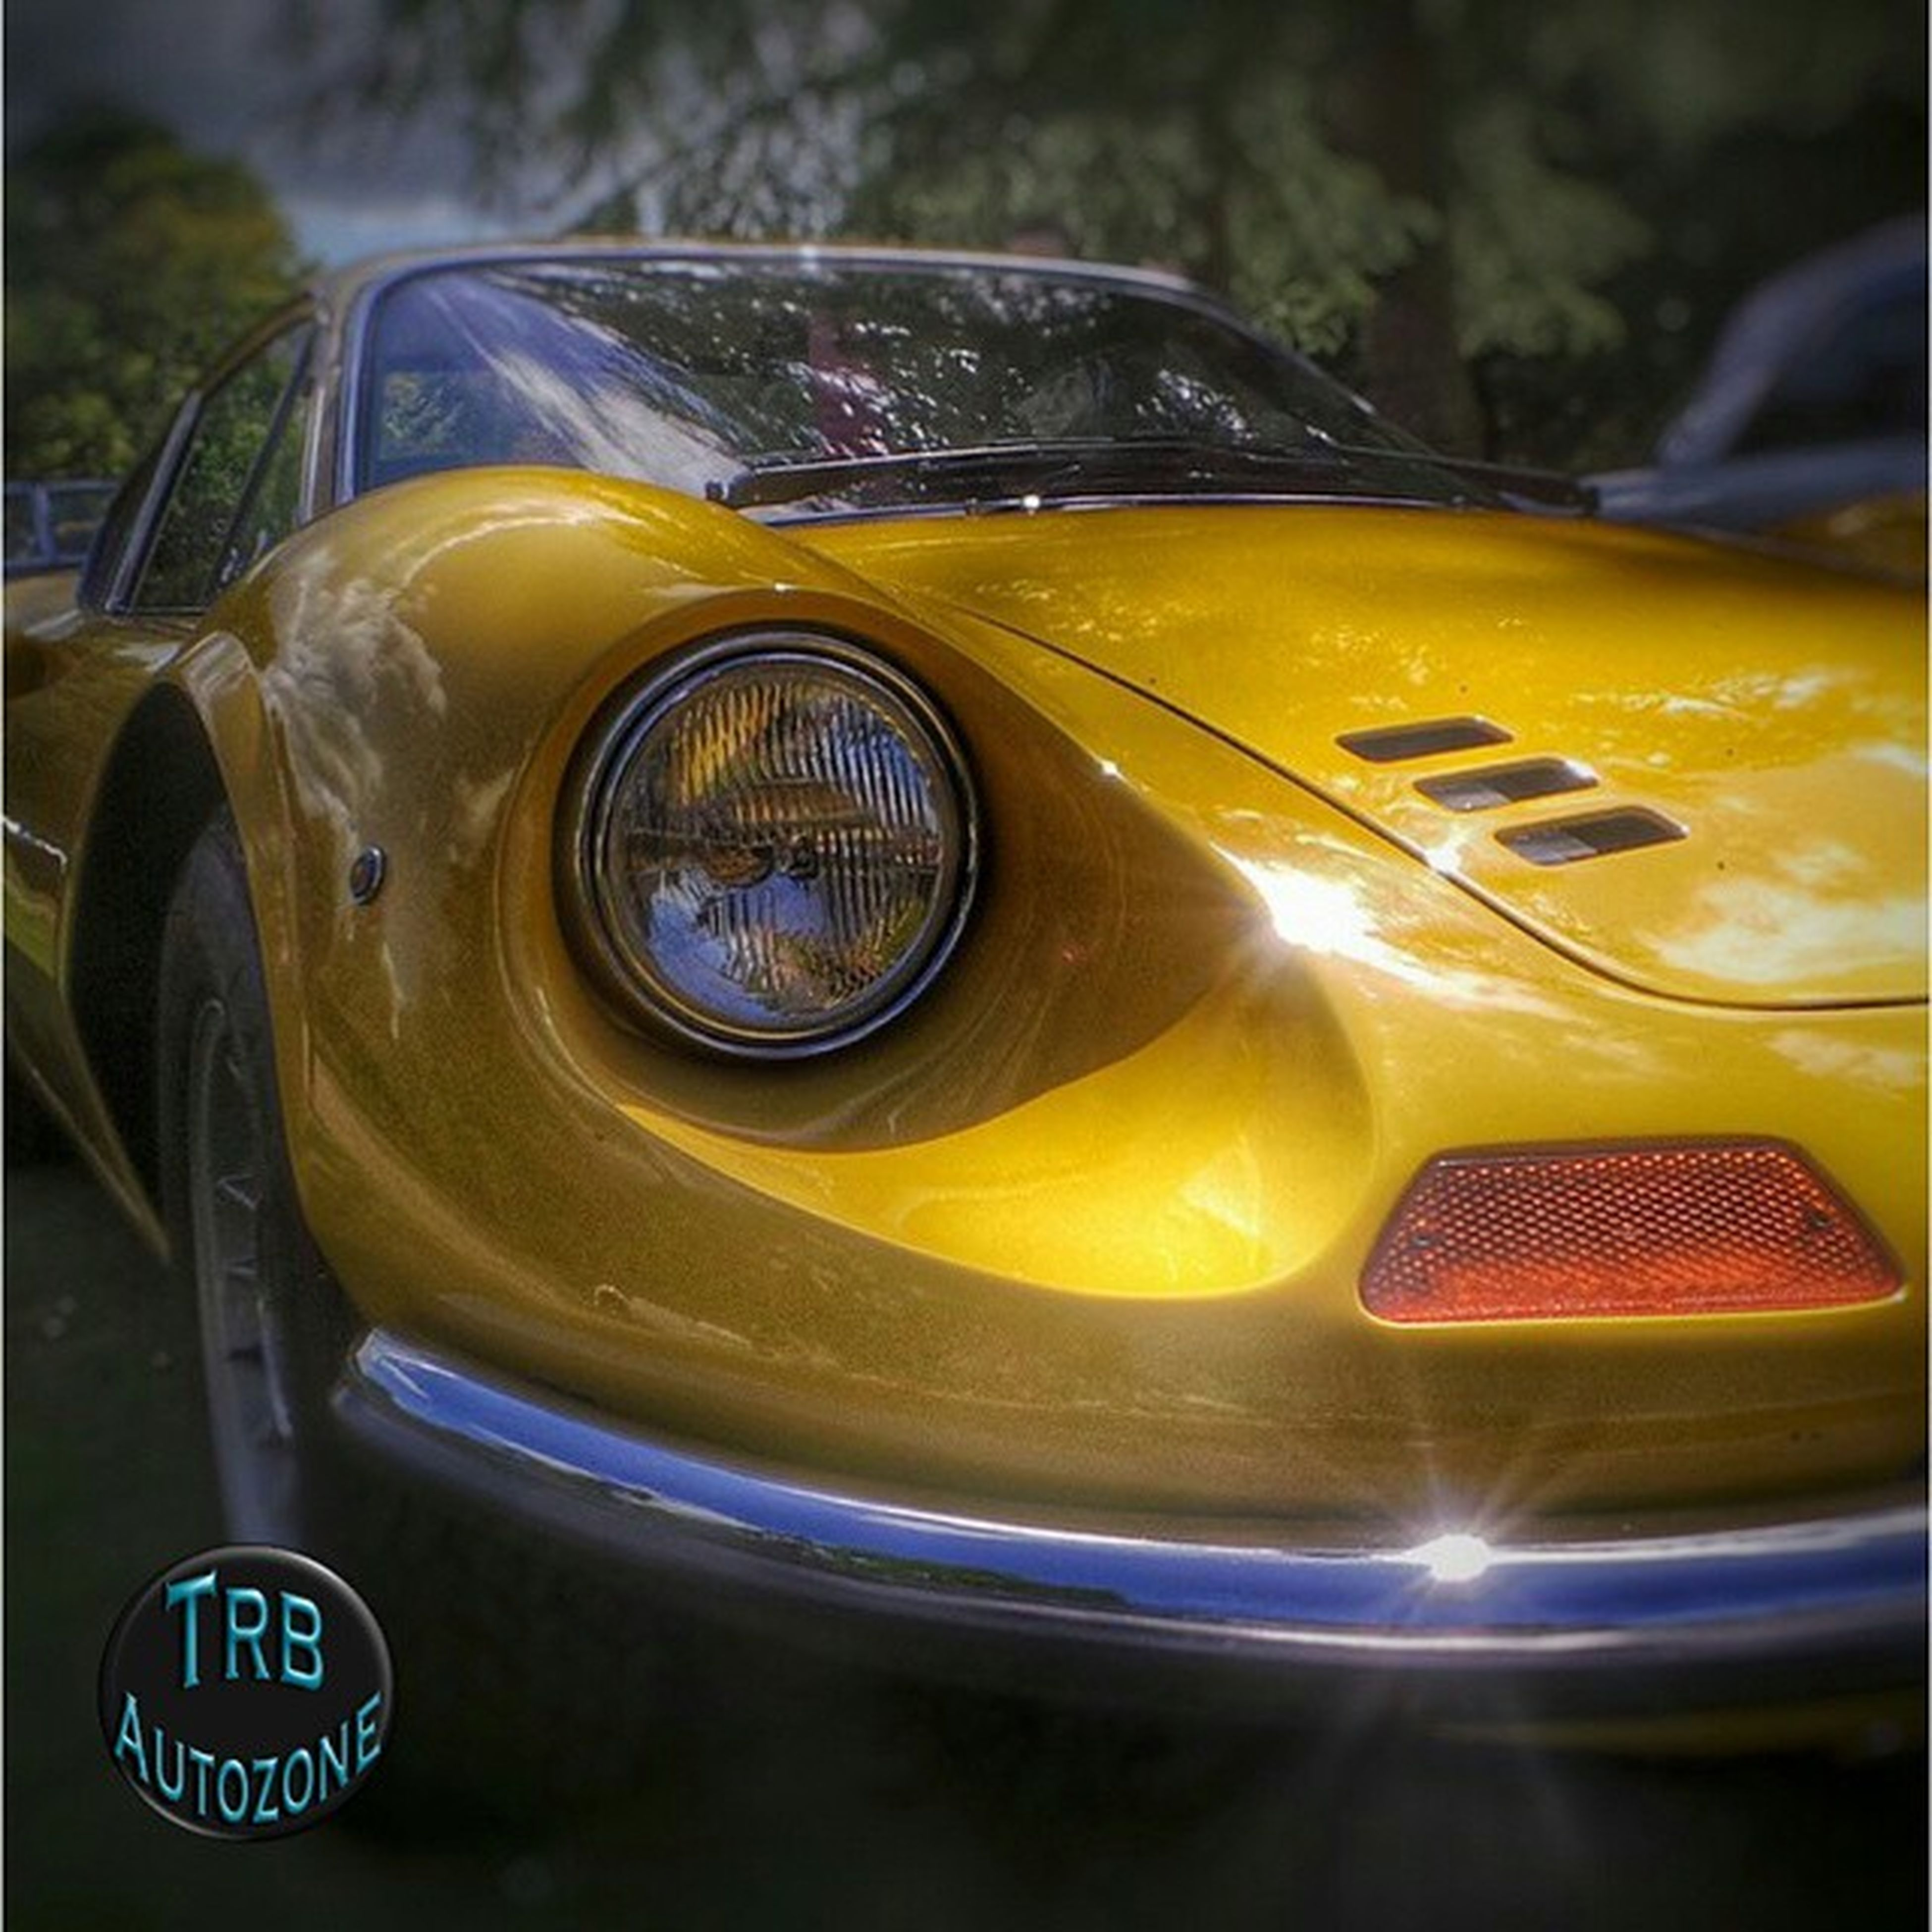 transportation, land vehicle, mode of transport, car, headlight, yellow, close-up, travel, reflection, street, part of, side-view mirror, focus on foreground, on the move, glass - material, motion, vintage car, no people, blurred motion, car interior